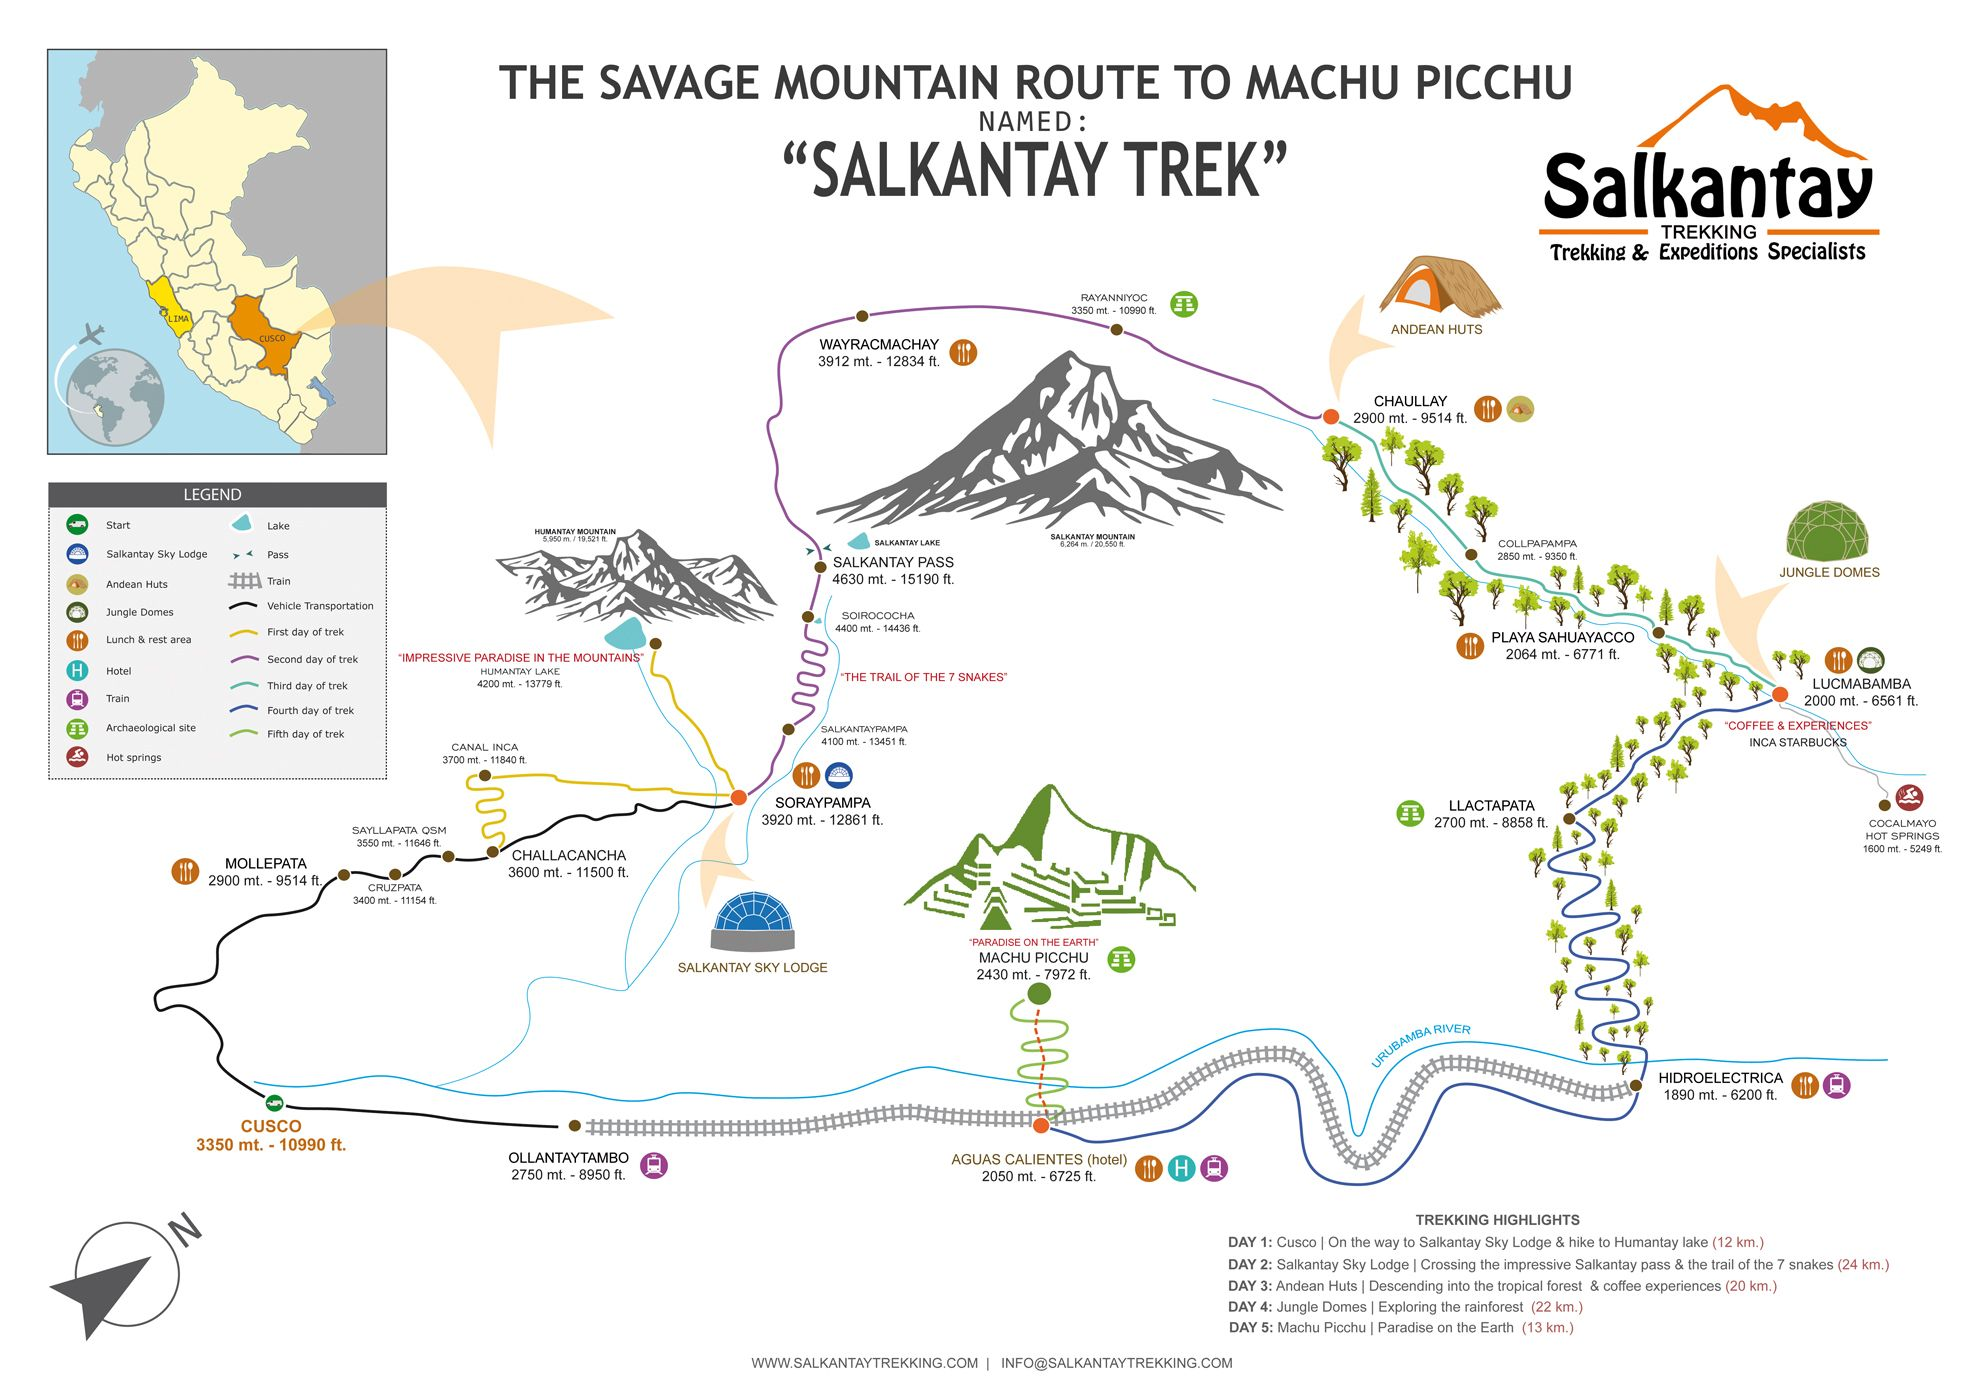 salkantay trek clic map and itinerary | Take a hike ... on appalacian trail map, inca trail map, santa cruz trail map, mountain trail map, machu picchu trail map, huayna picchu trail map, tuckerman ravine trail map, fat man's pass trail map,